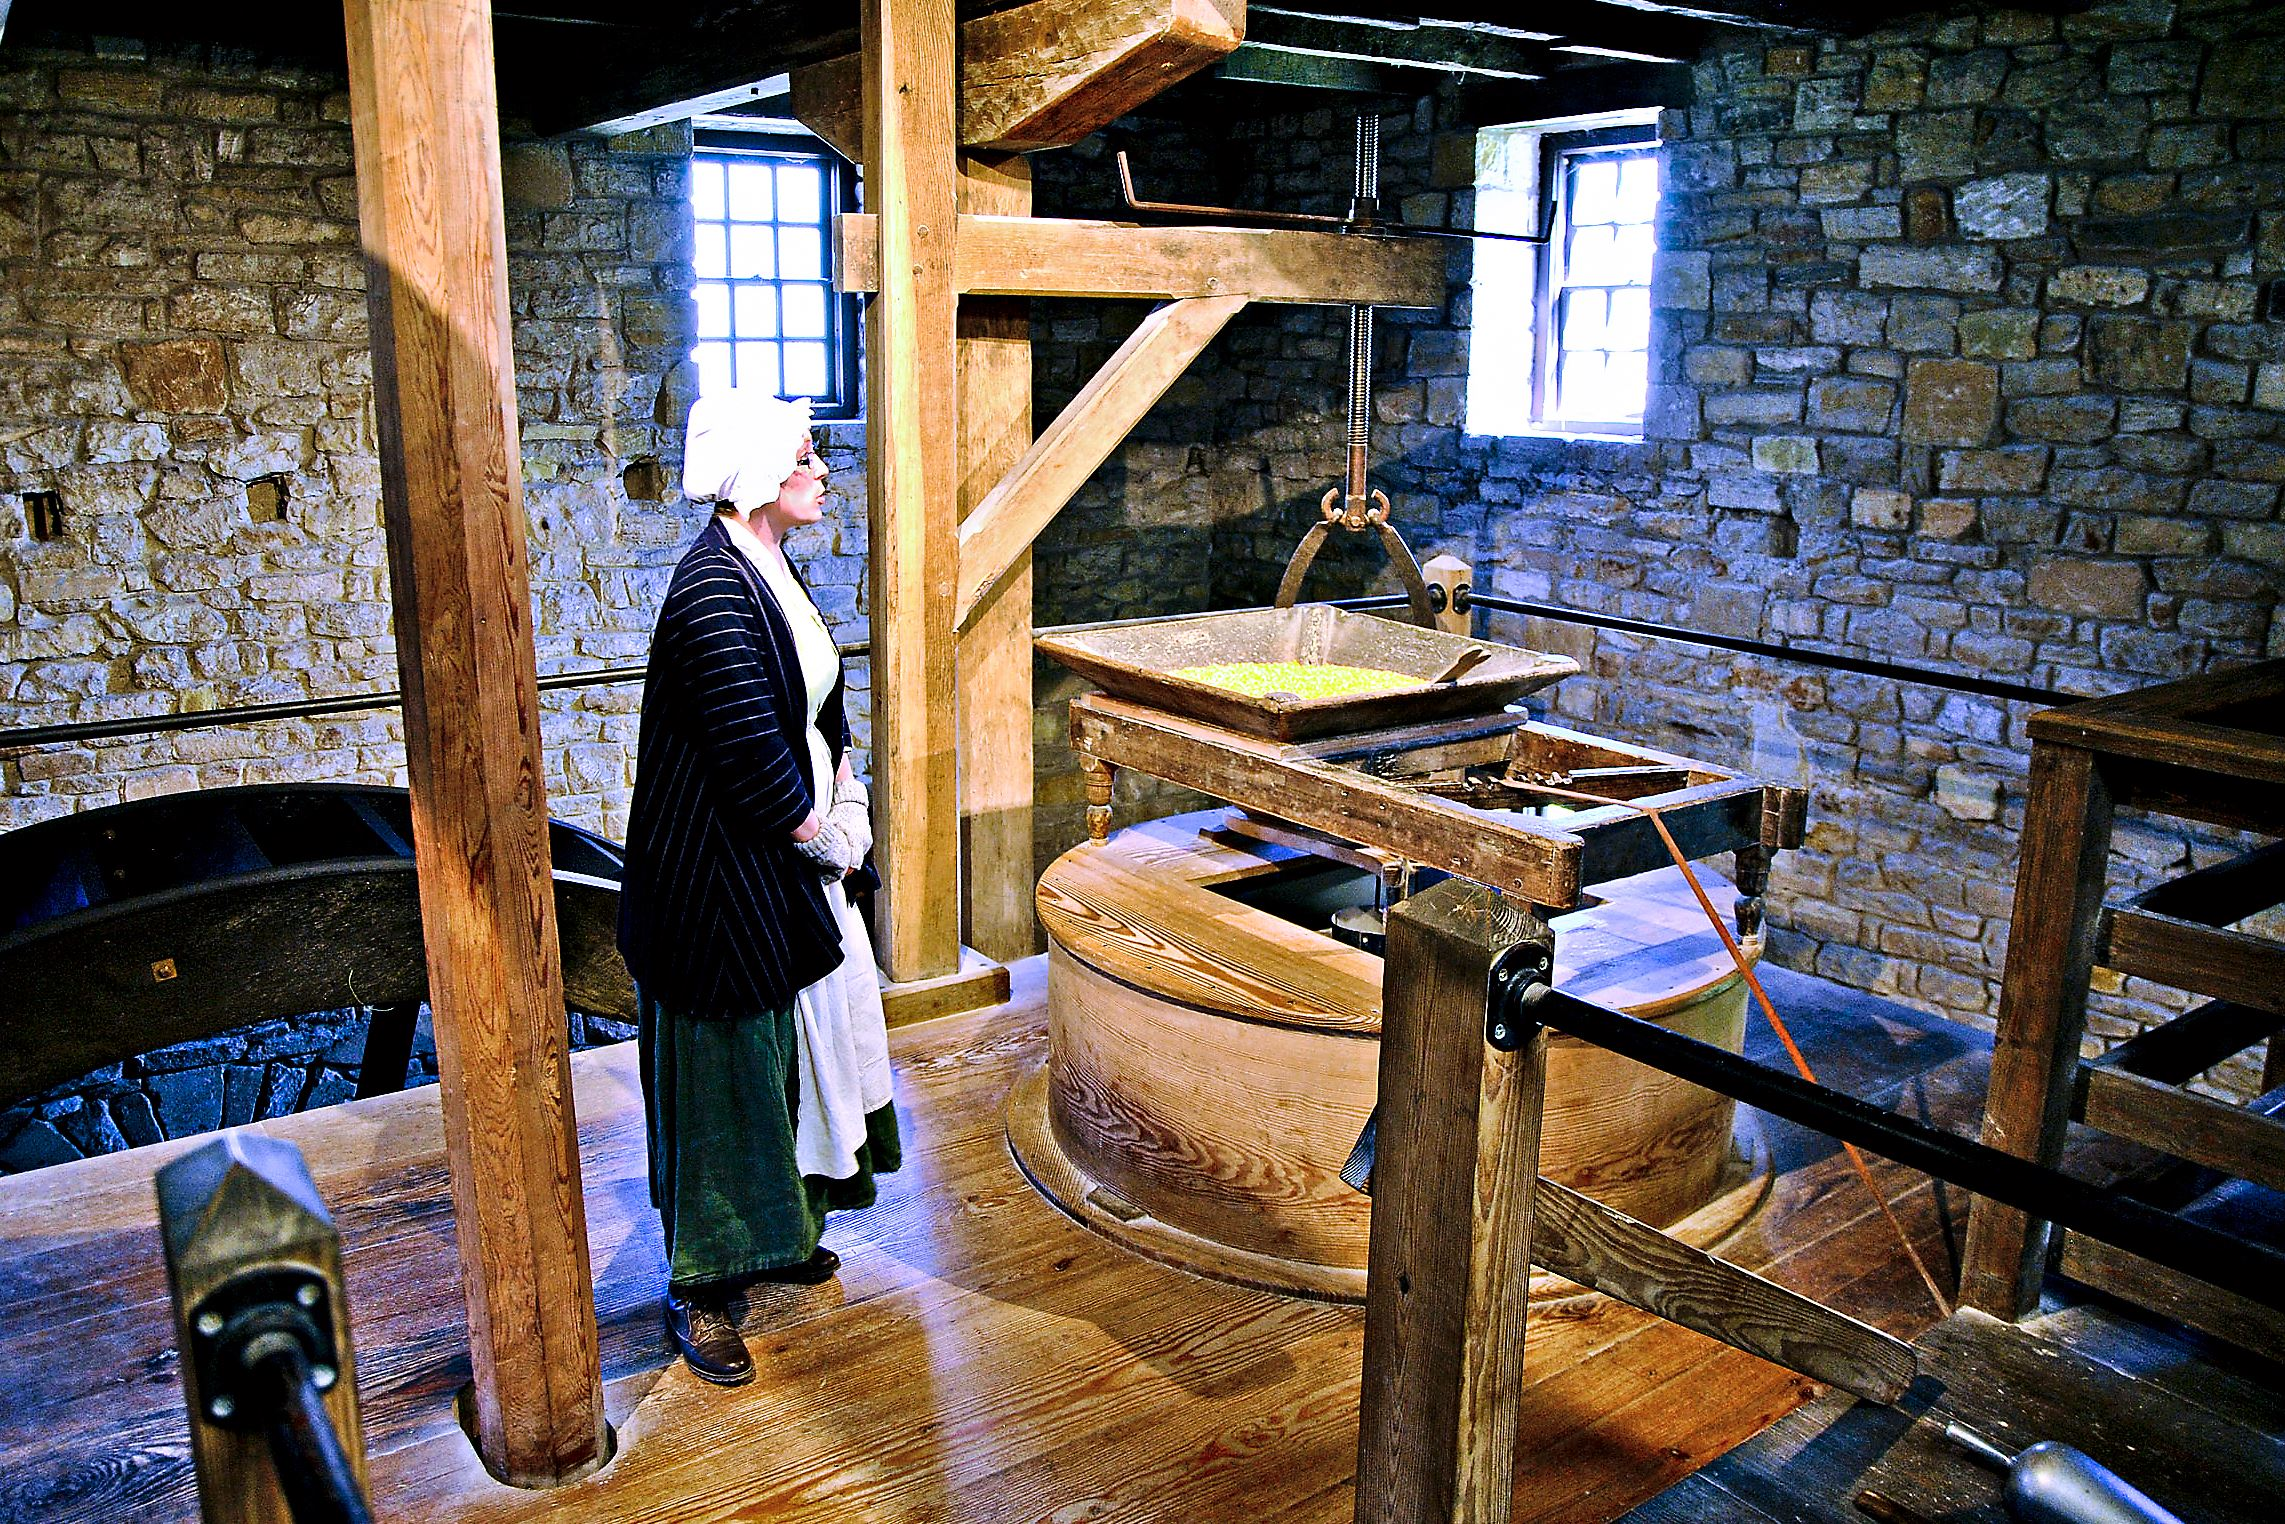 gristmill0518_grist_mill_mt_vernon A visit to George Washington's reconstructed gristmill at Mount Vernon includes demonstrations by millers in early-American attire.